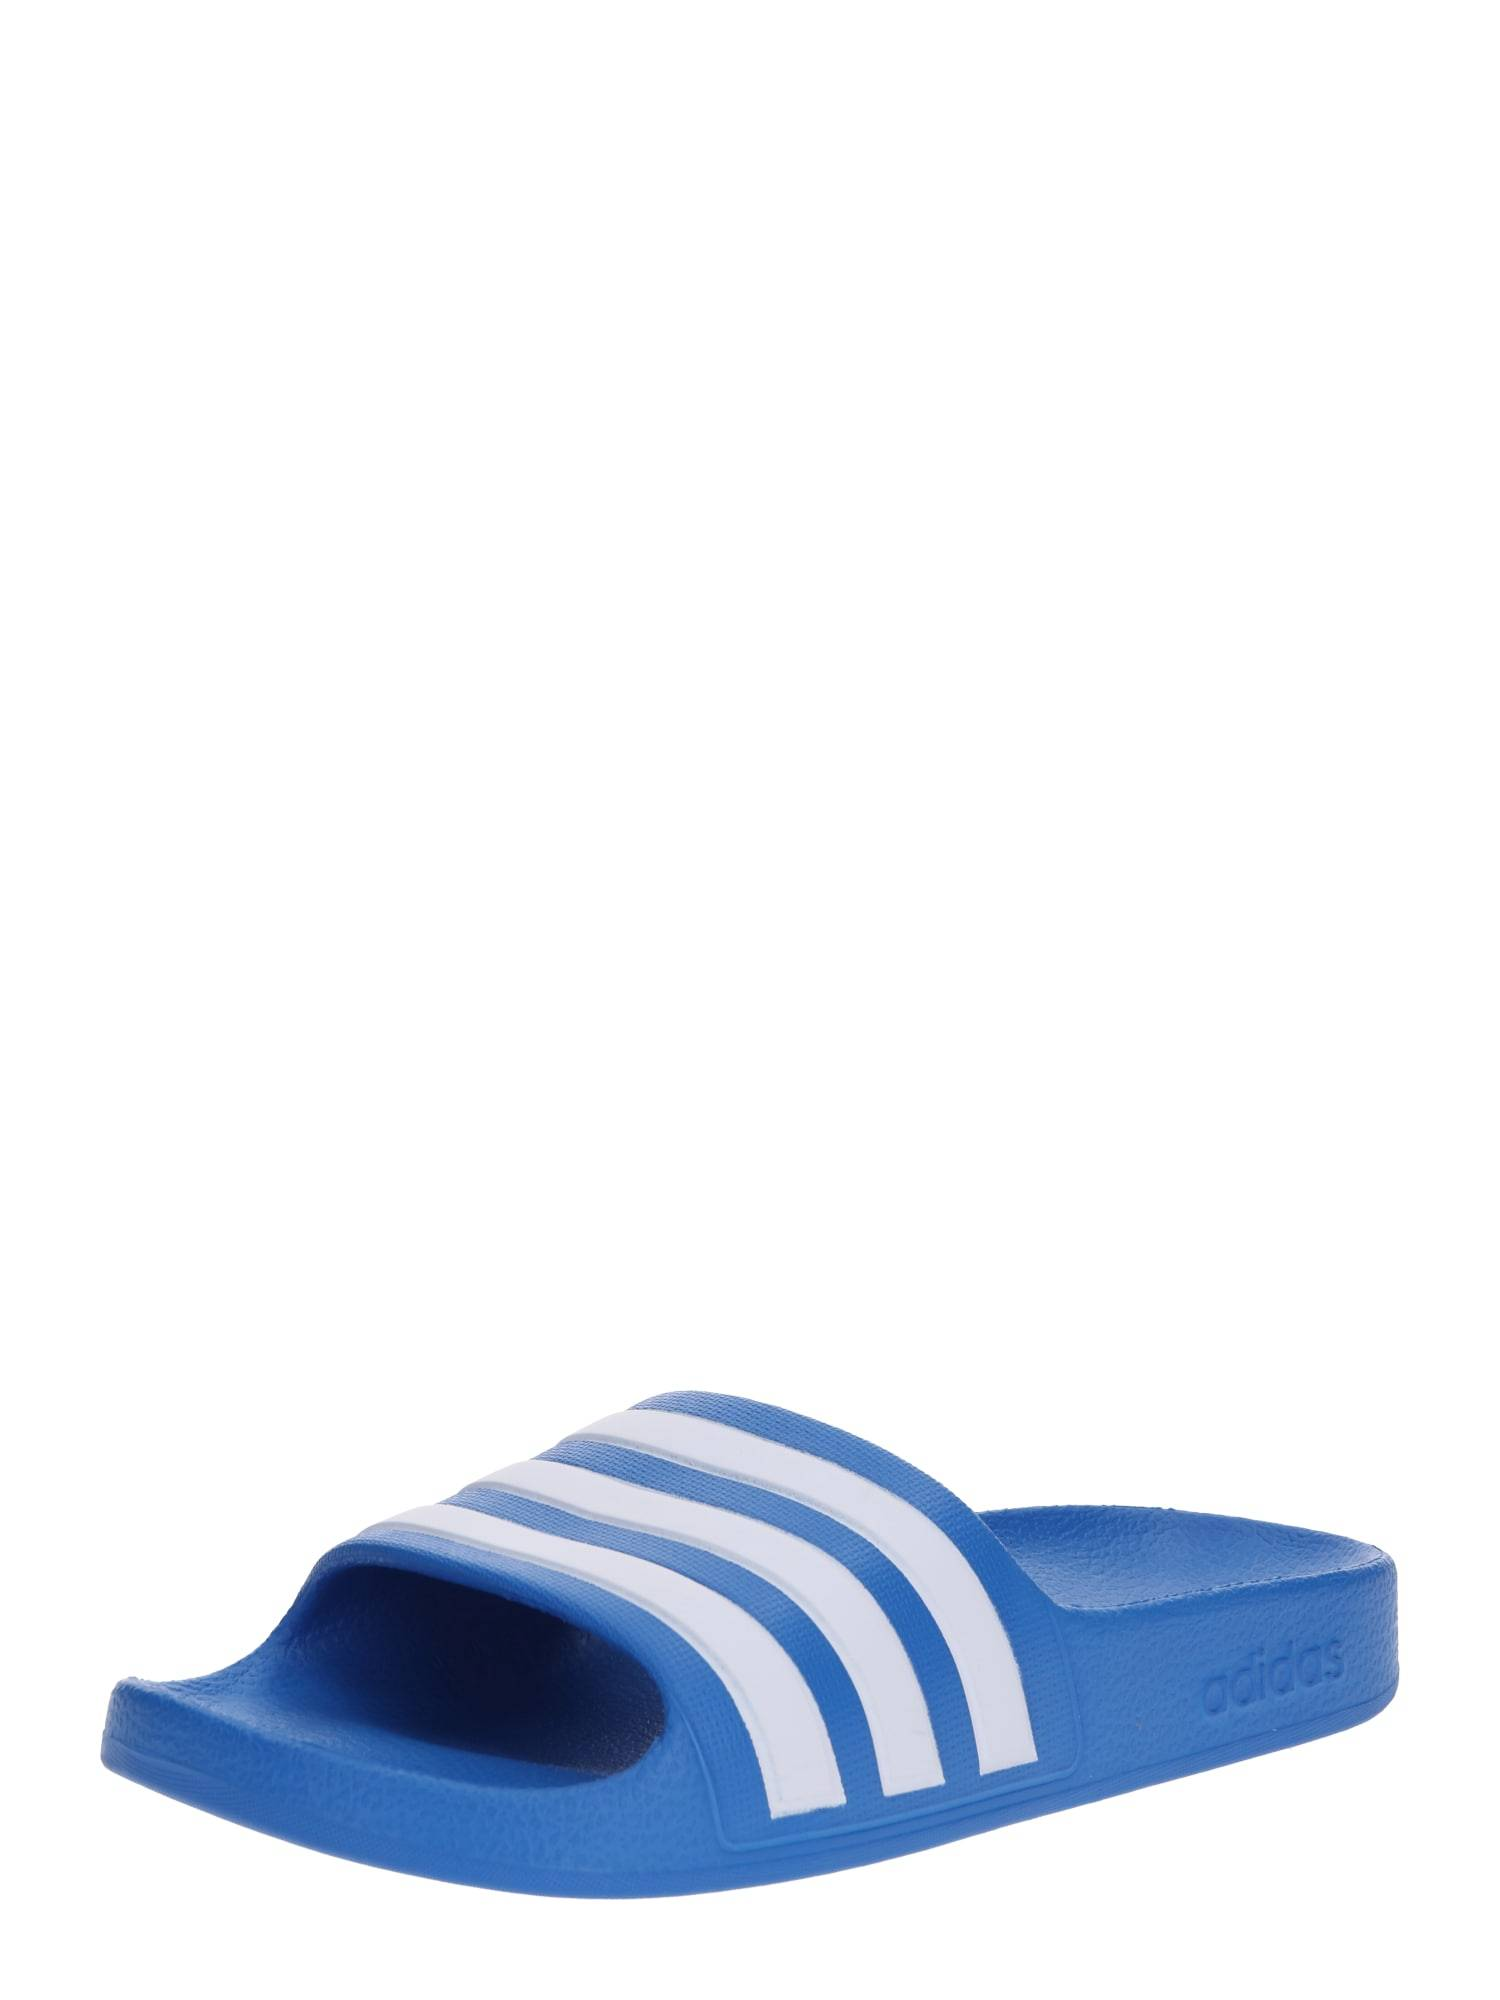 ADIDAS PERFORMANCE Claquettes / Tongs  - Bleu - Taille: 31 - boy